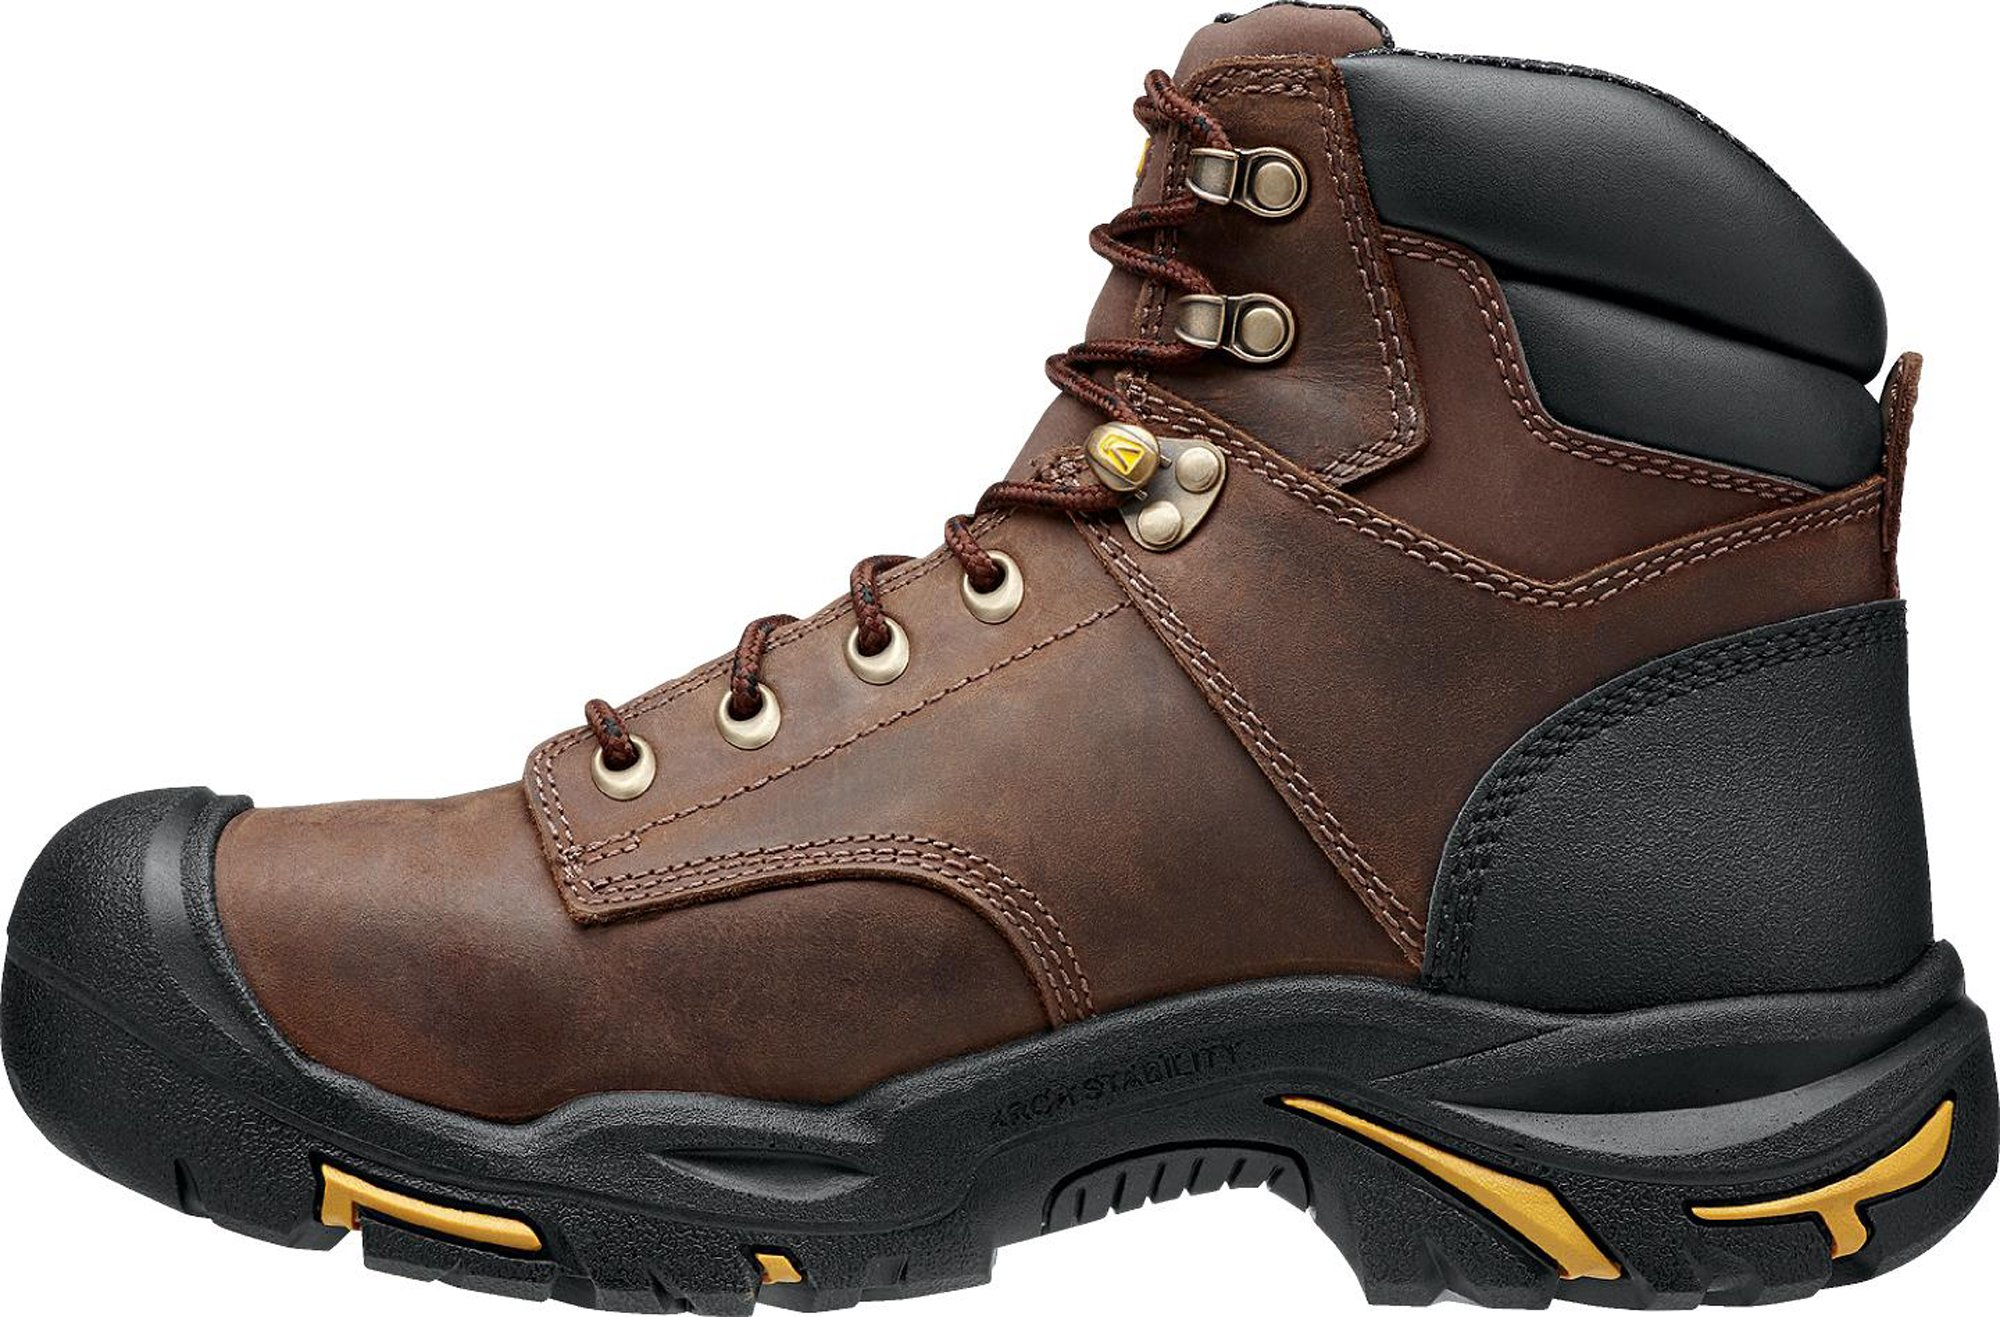 KEEN Utility MT Vernon 6'' Waterproof (Steel Toe), Men's Work Boot, Cascade Brown, 15 EE by KEEN Utility (Image #4)